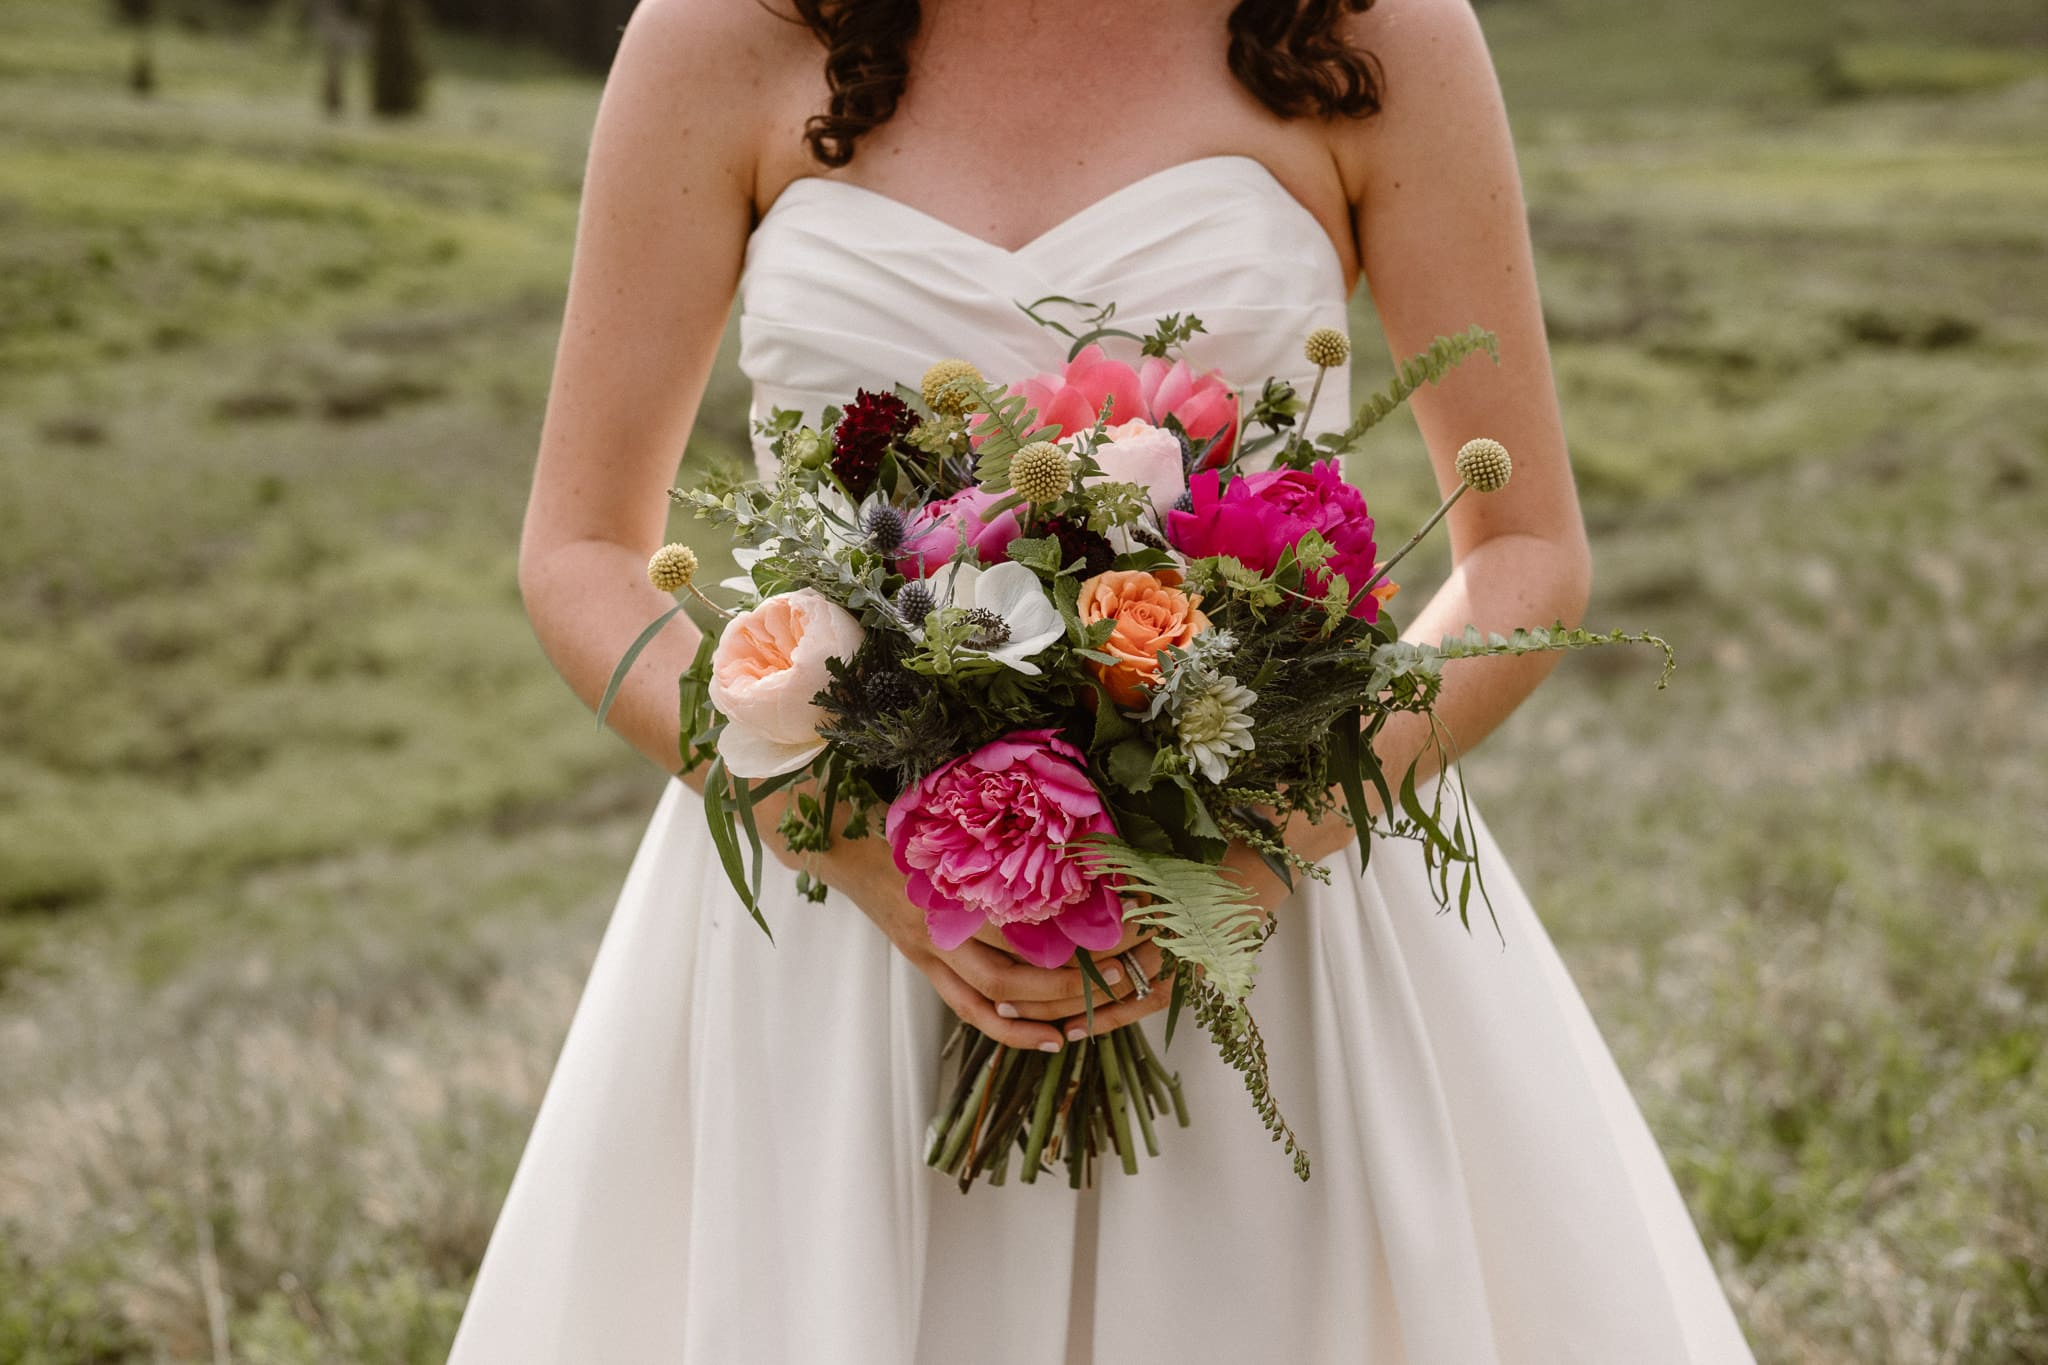 Crested Butte elopement photographer, Colorado adventure wedding photographer, bride holding bouquet by From the Ground Up Flowers